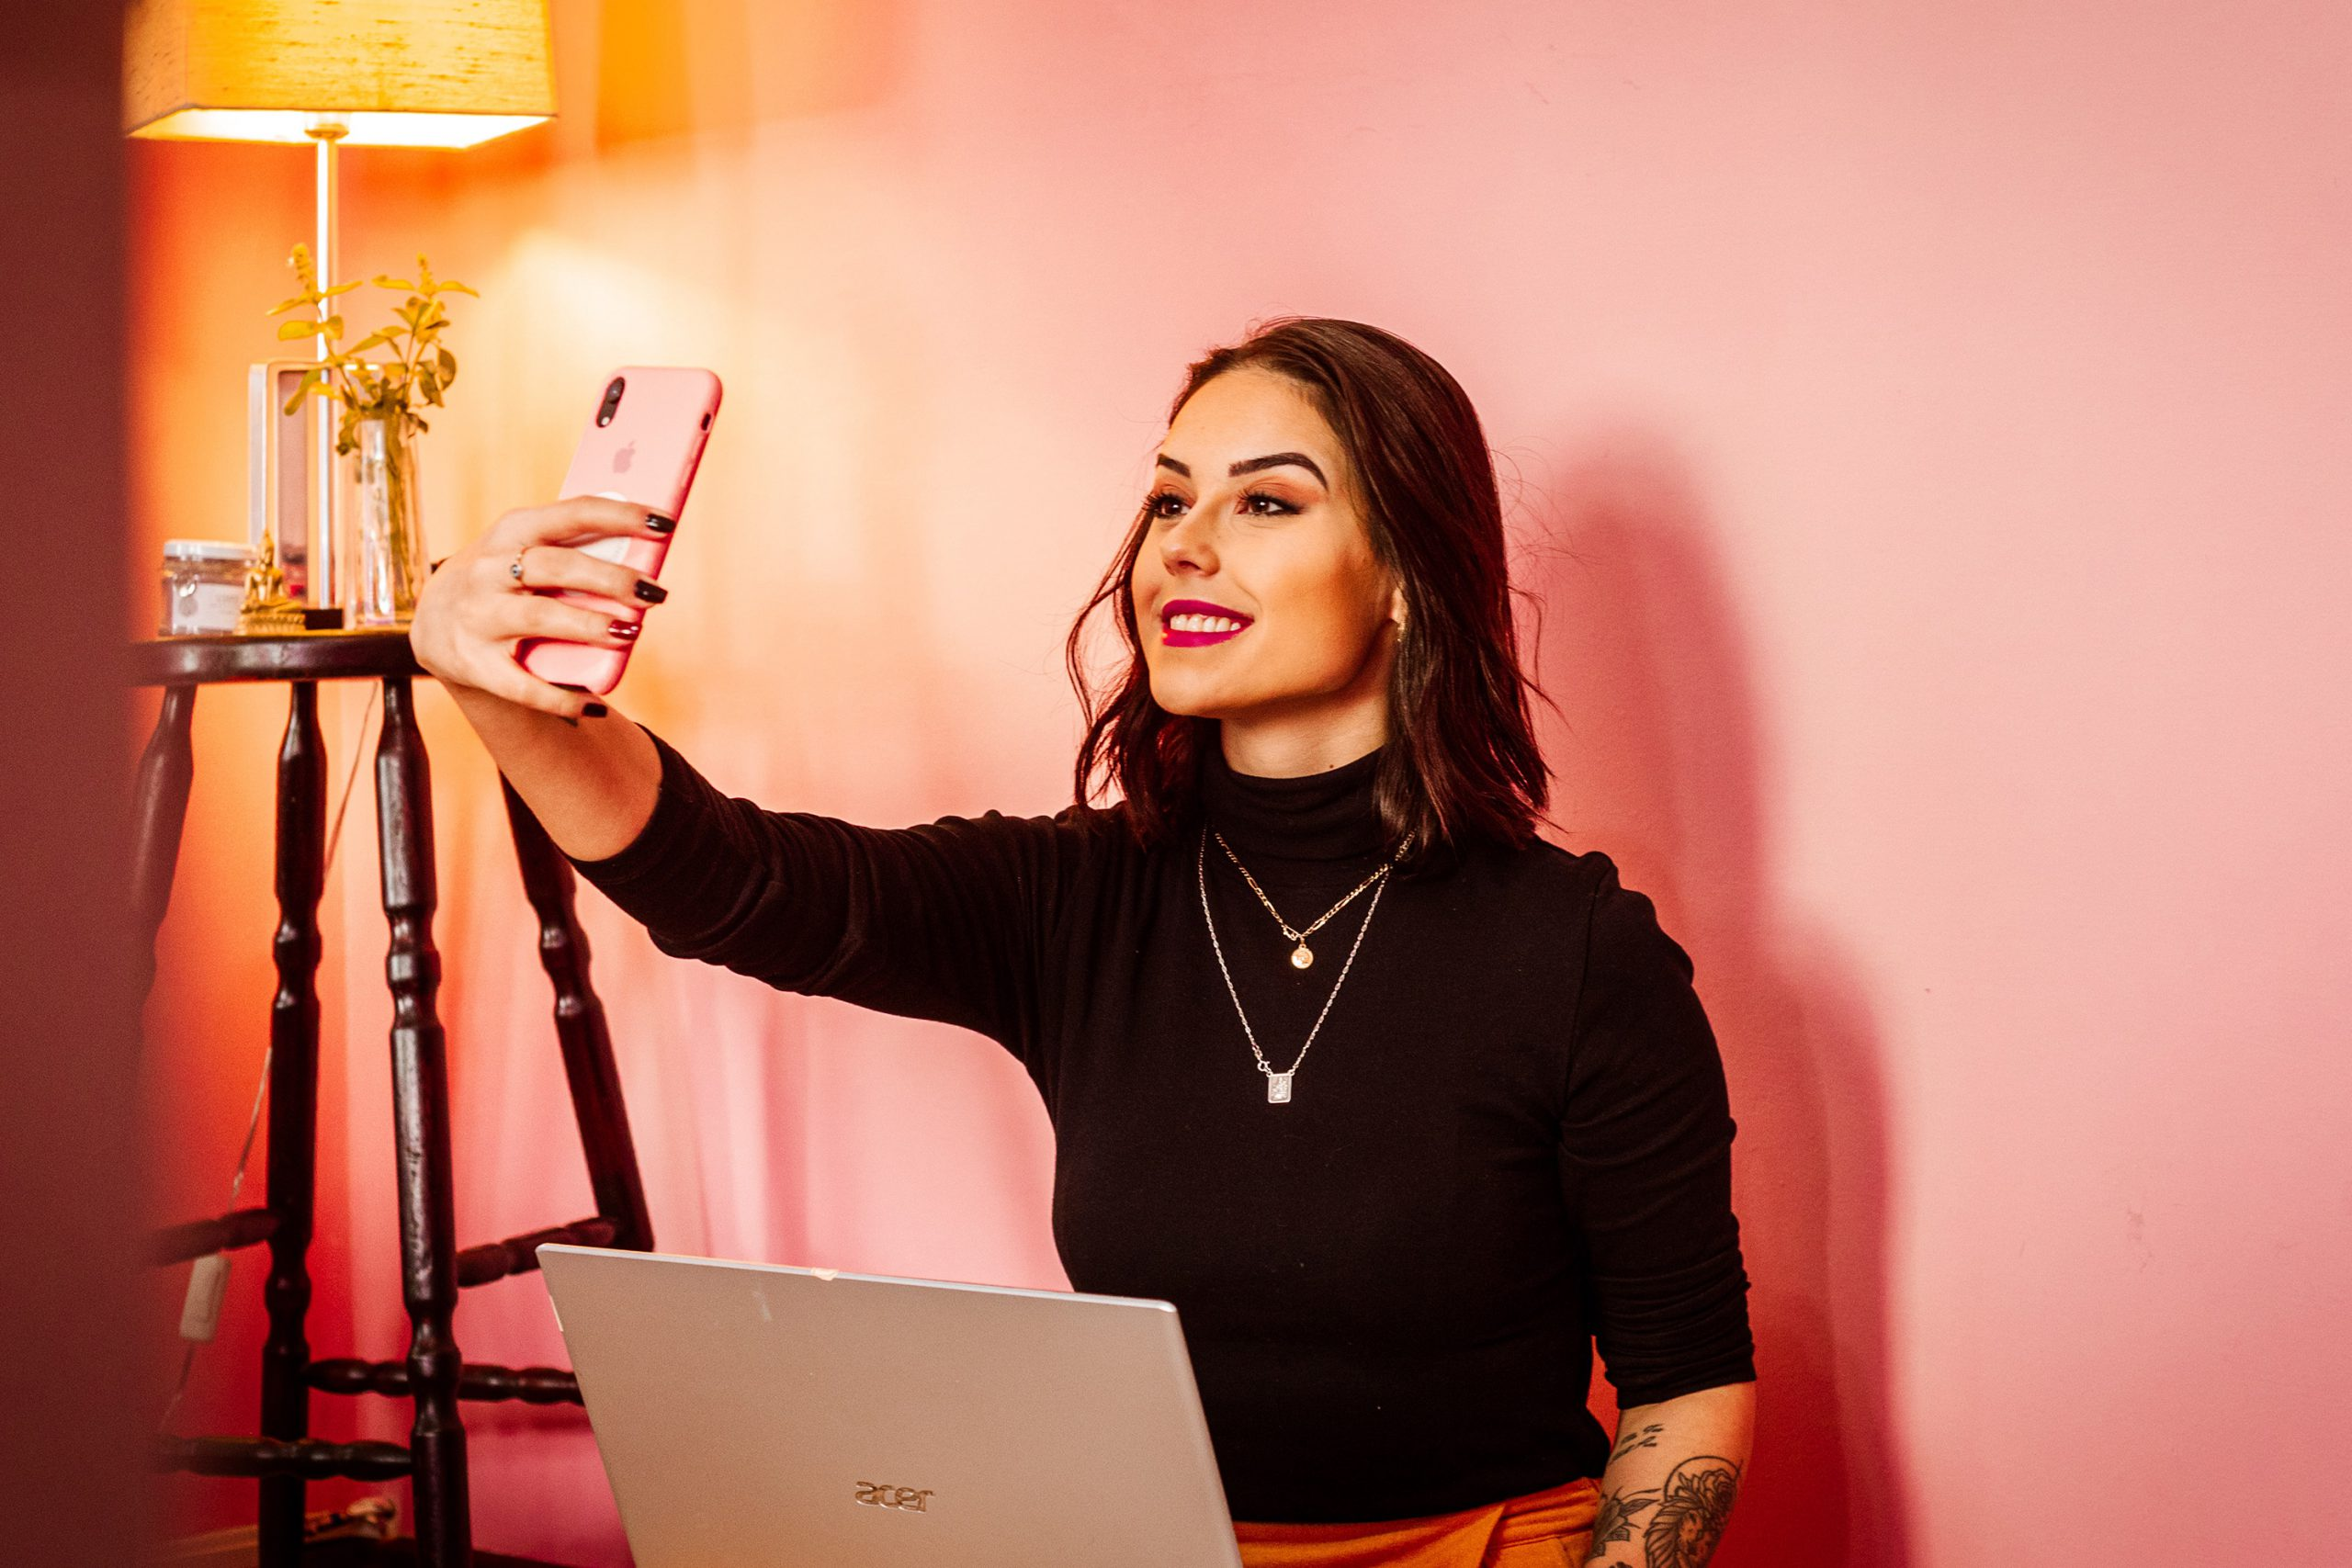 Women making selfie in pink room while sitting behind a laptop